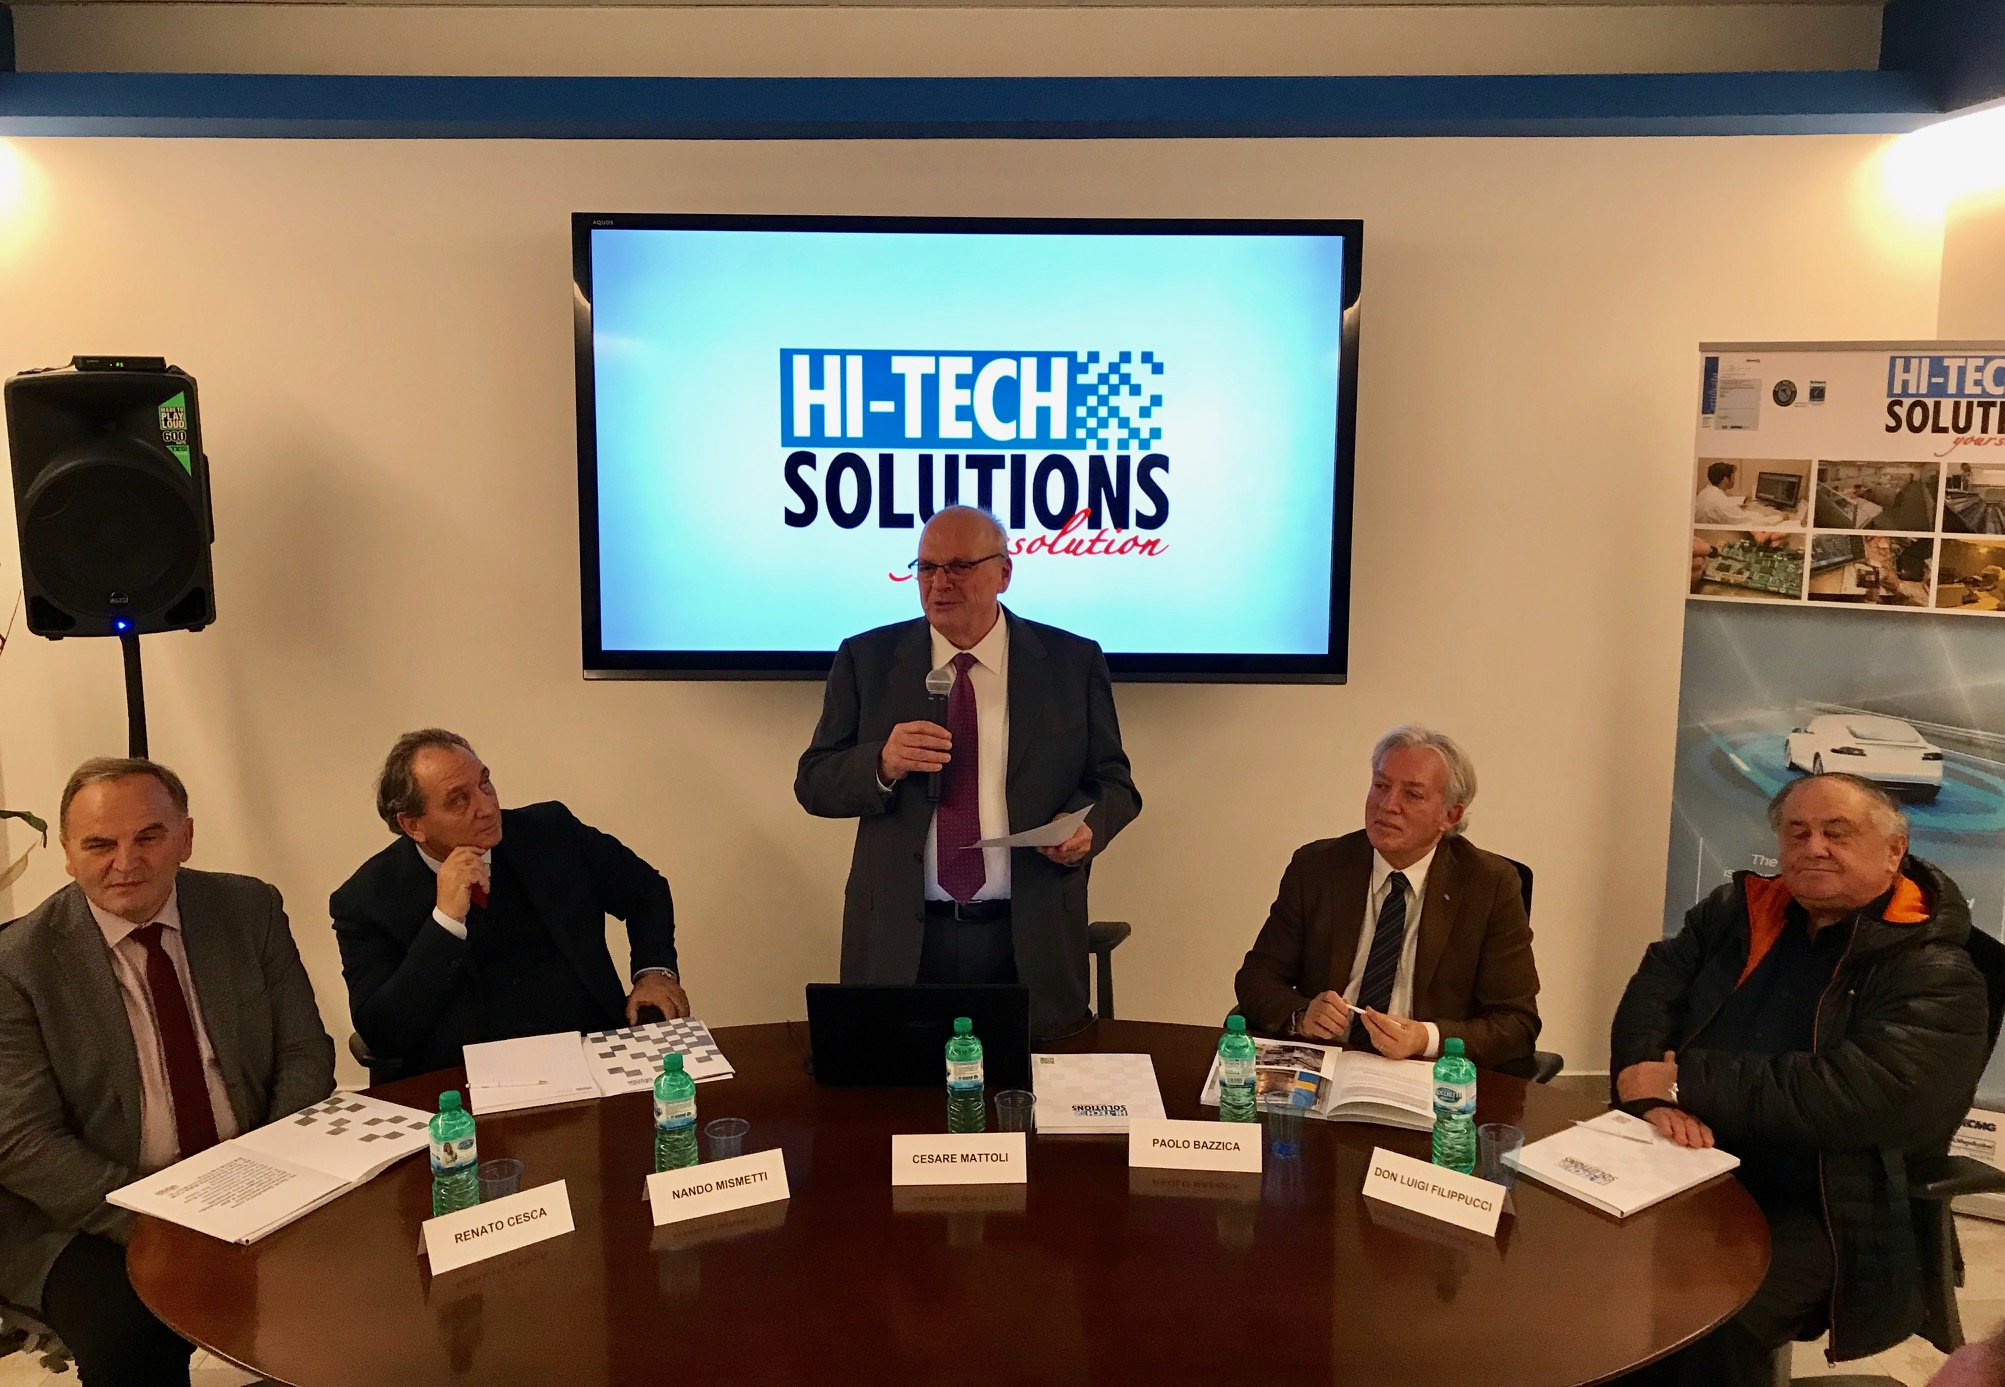 Hi Tech Solutions: in Asia soluzioni hi-tech 'made in Foligno'